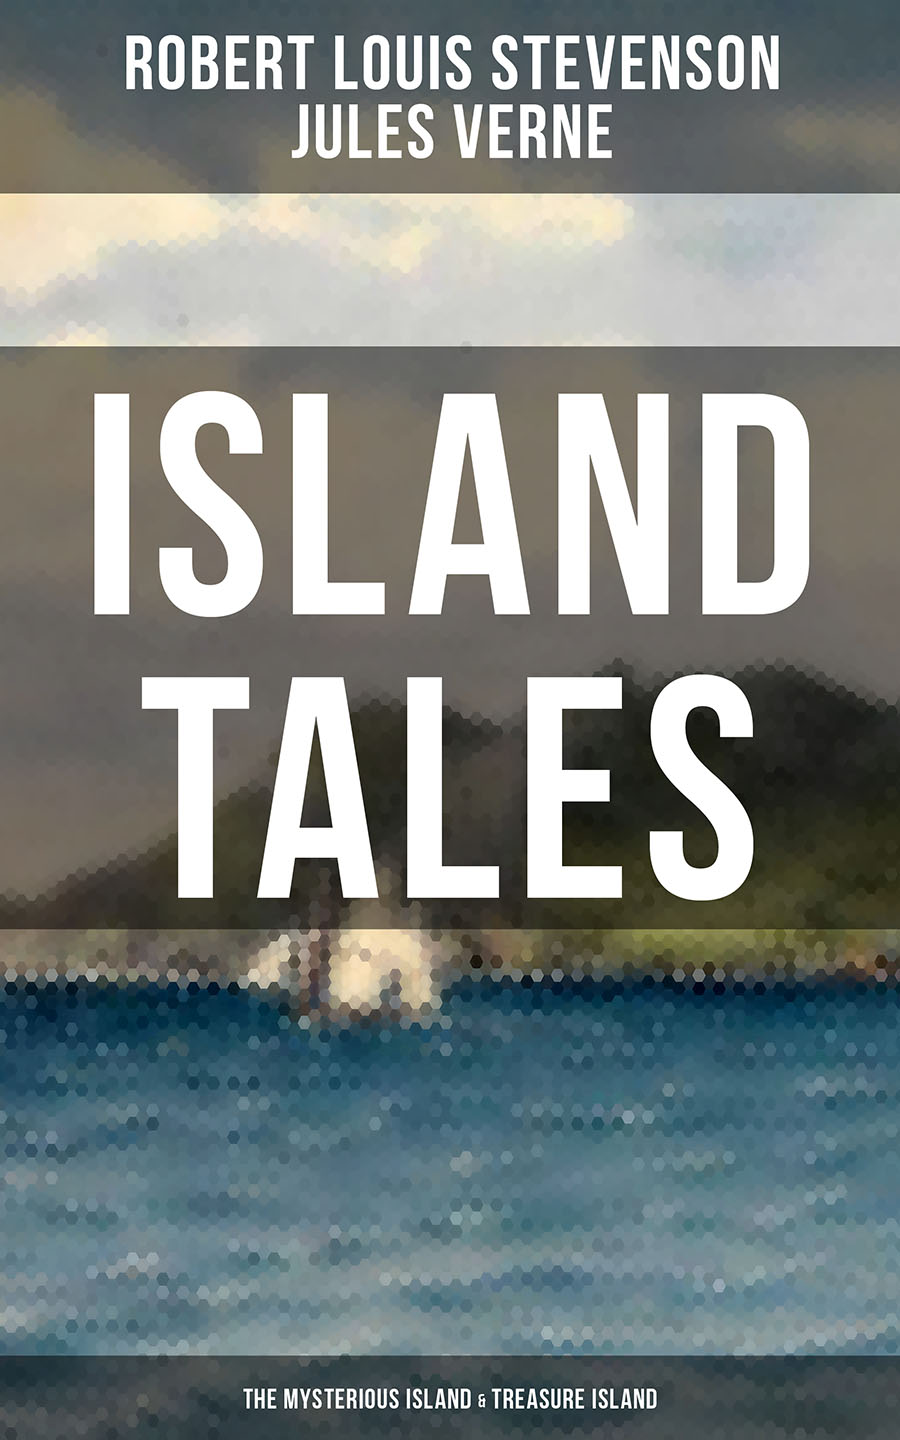 цена на Жюль Верн ISLAND TALES: The Mysterious Island & Treasure Island